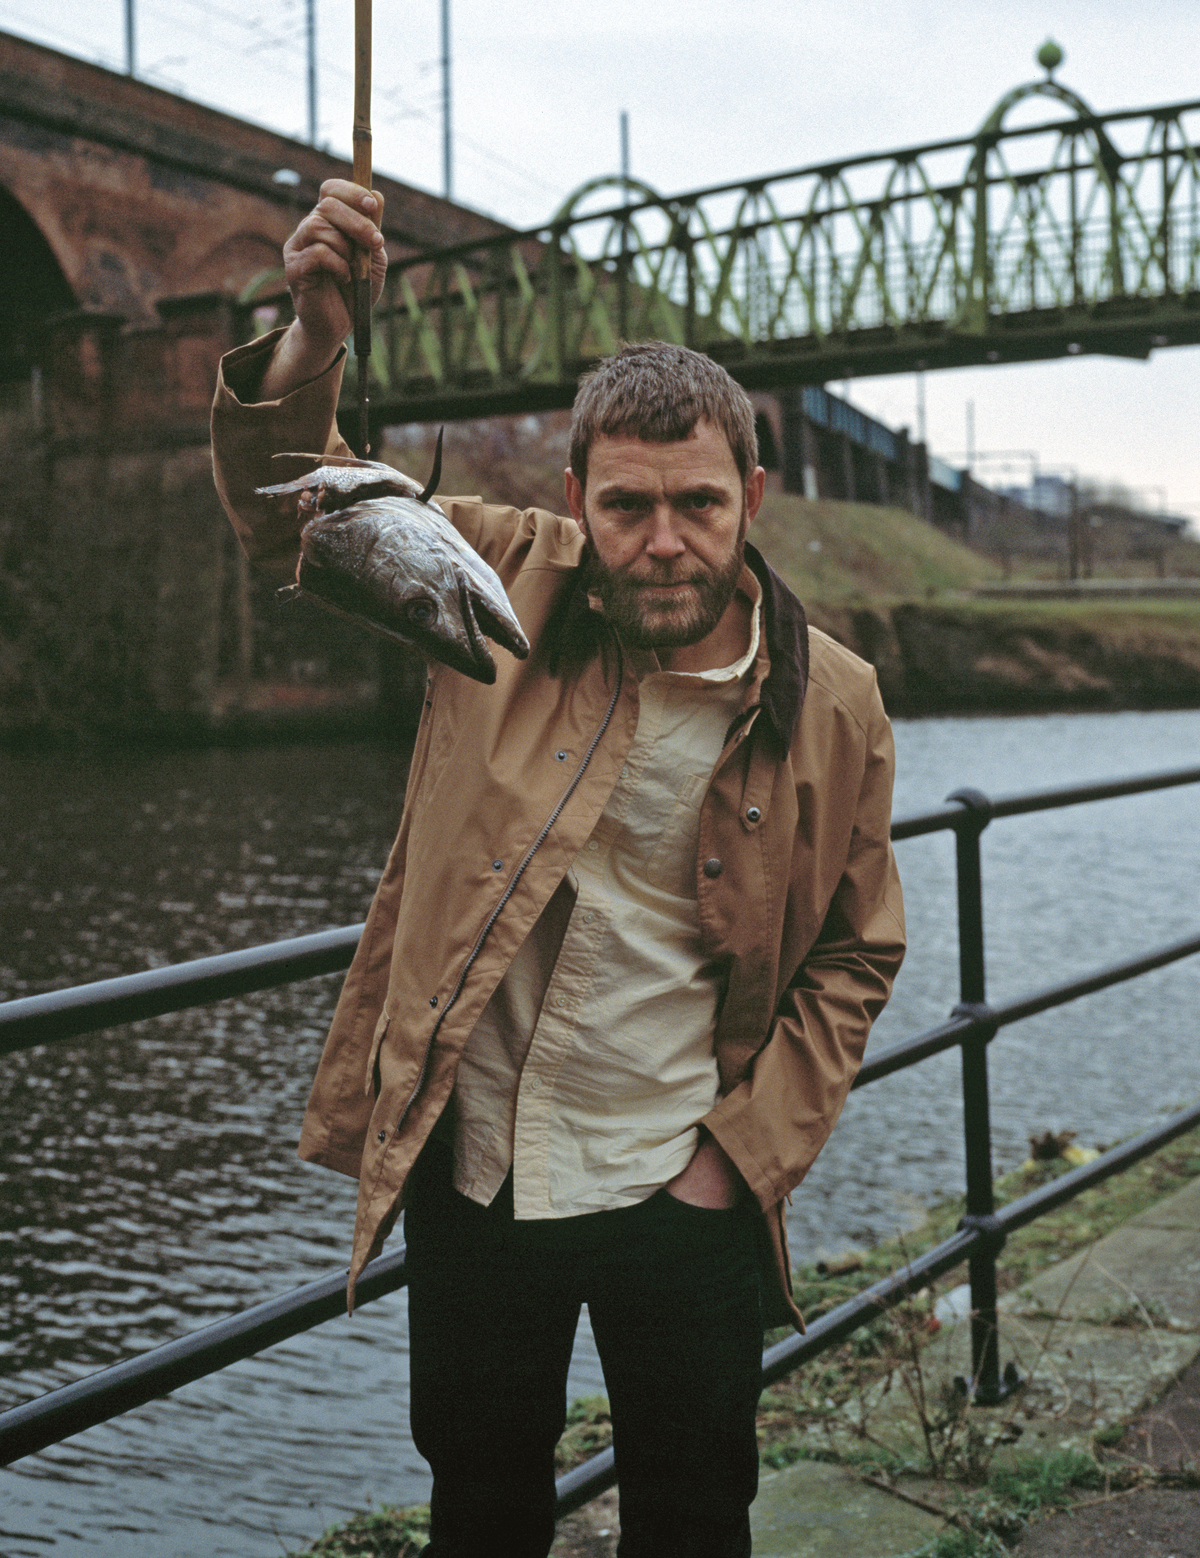 Jacket by Barbour, shirt by Beams+,fish head on a hook – model's own